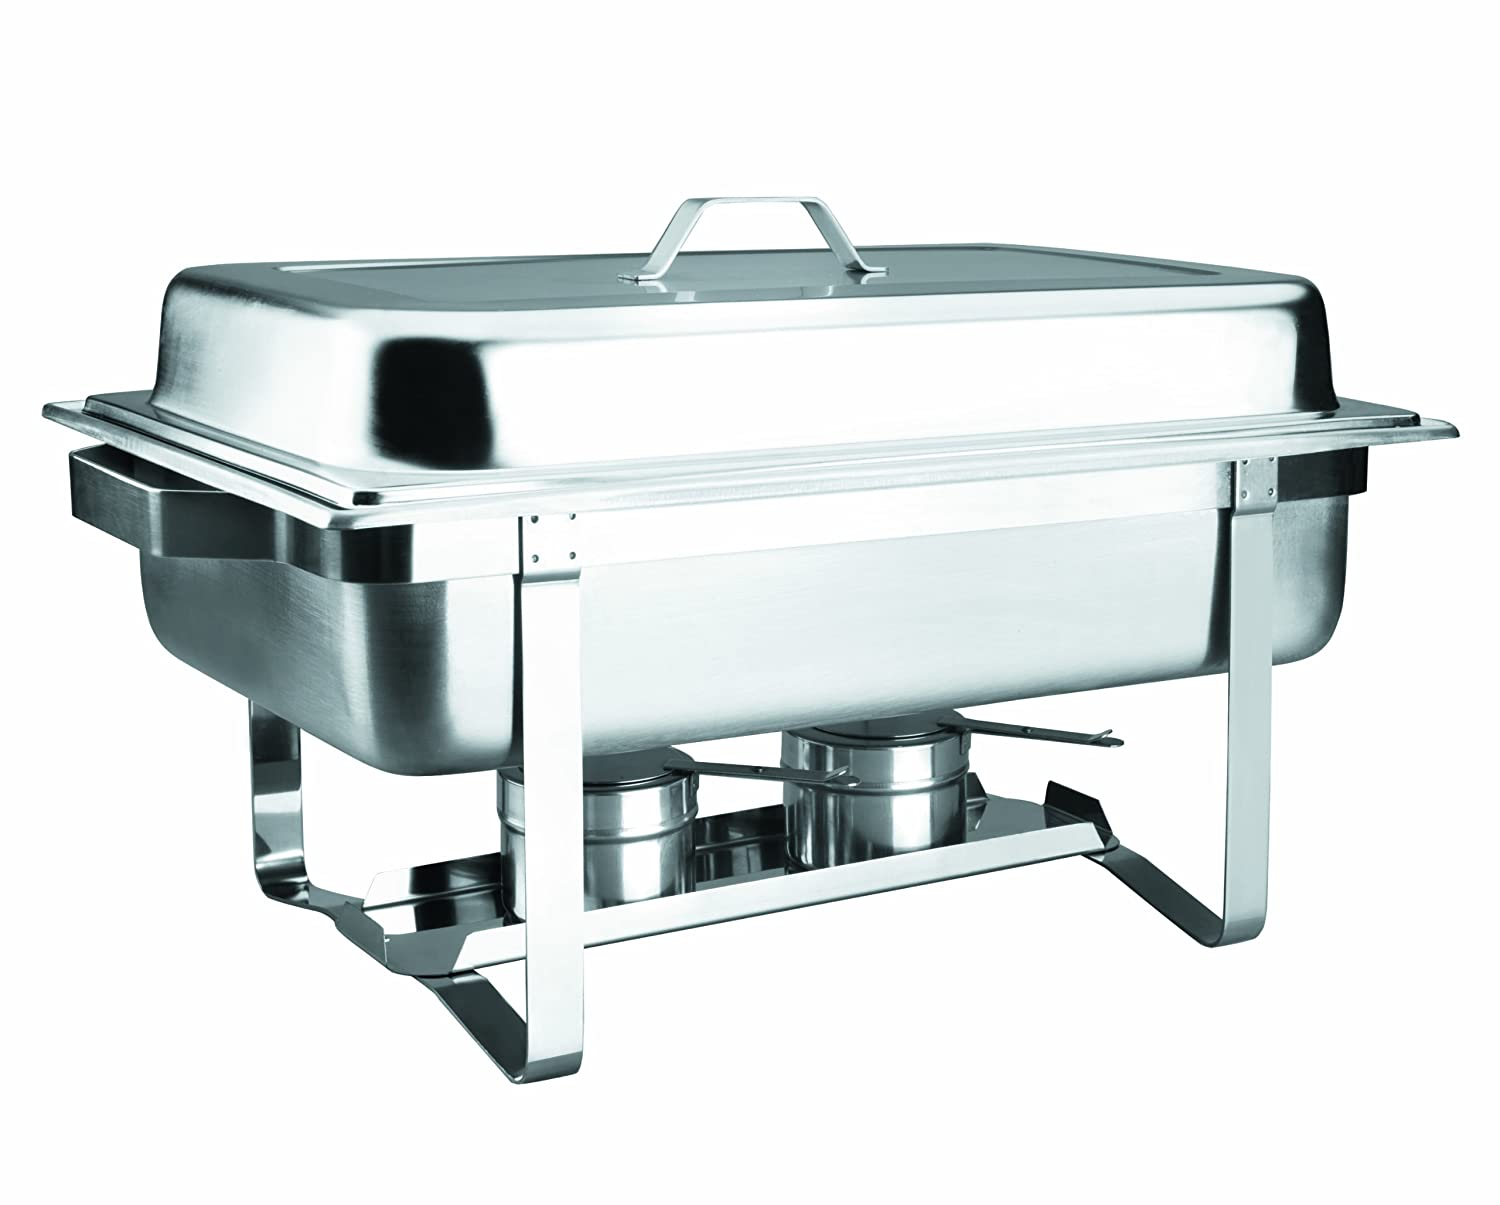 Lacor Basic 69110 - Chafing Dish gn 1/1, con tapa inoxidable, 8,5 litros Lacor_69110